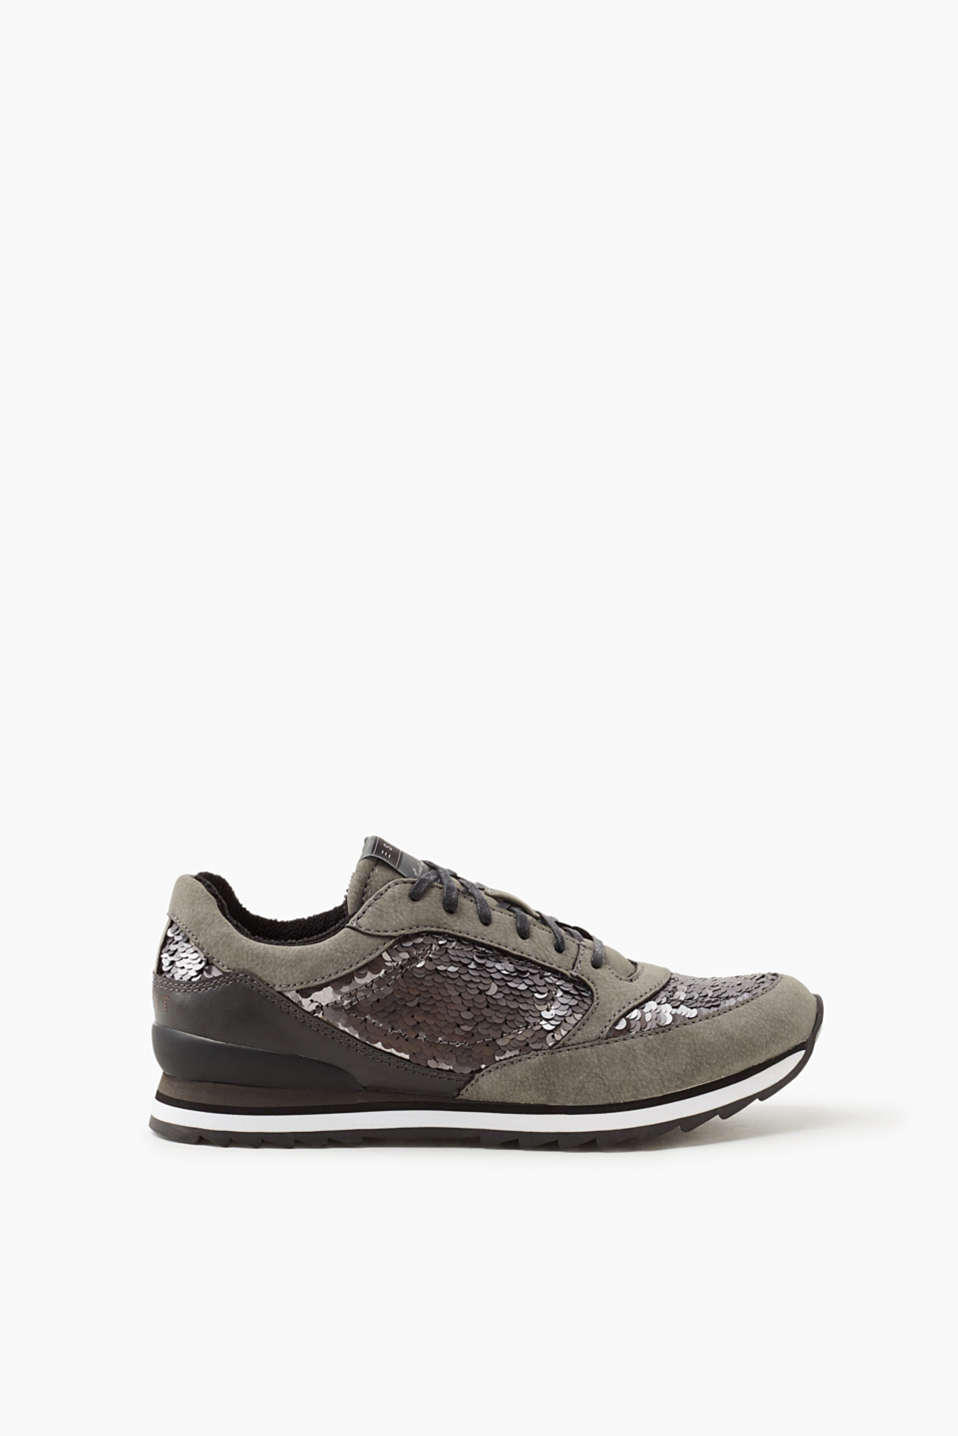 Esprit - Lace-up trainers trimmed with sequins